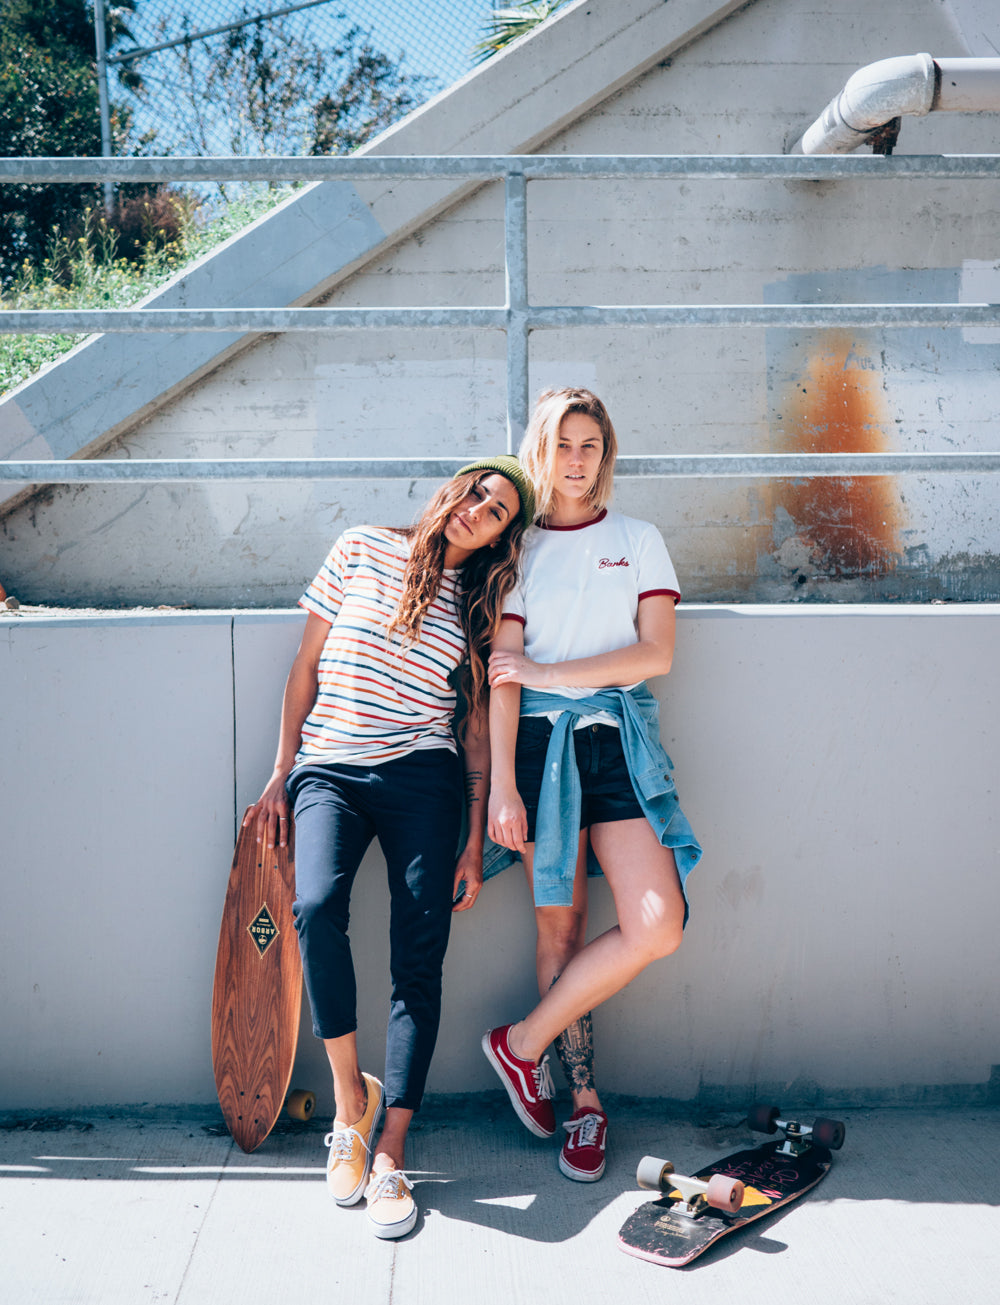 The skater girls wearing Banks Journal clothing